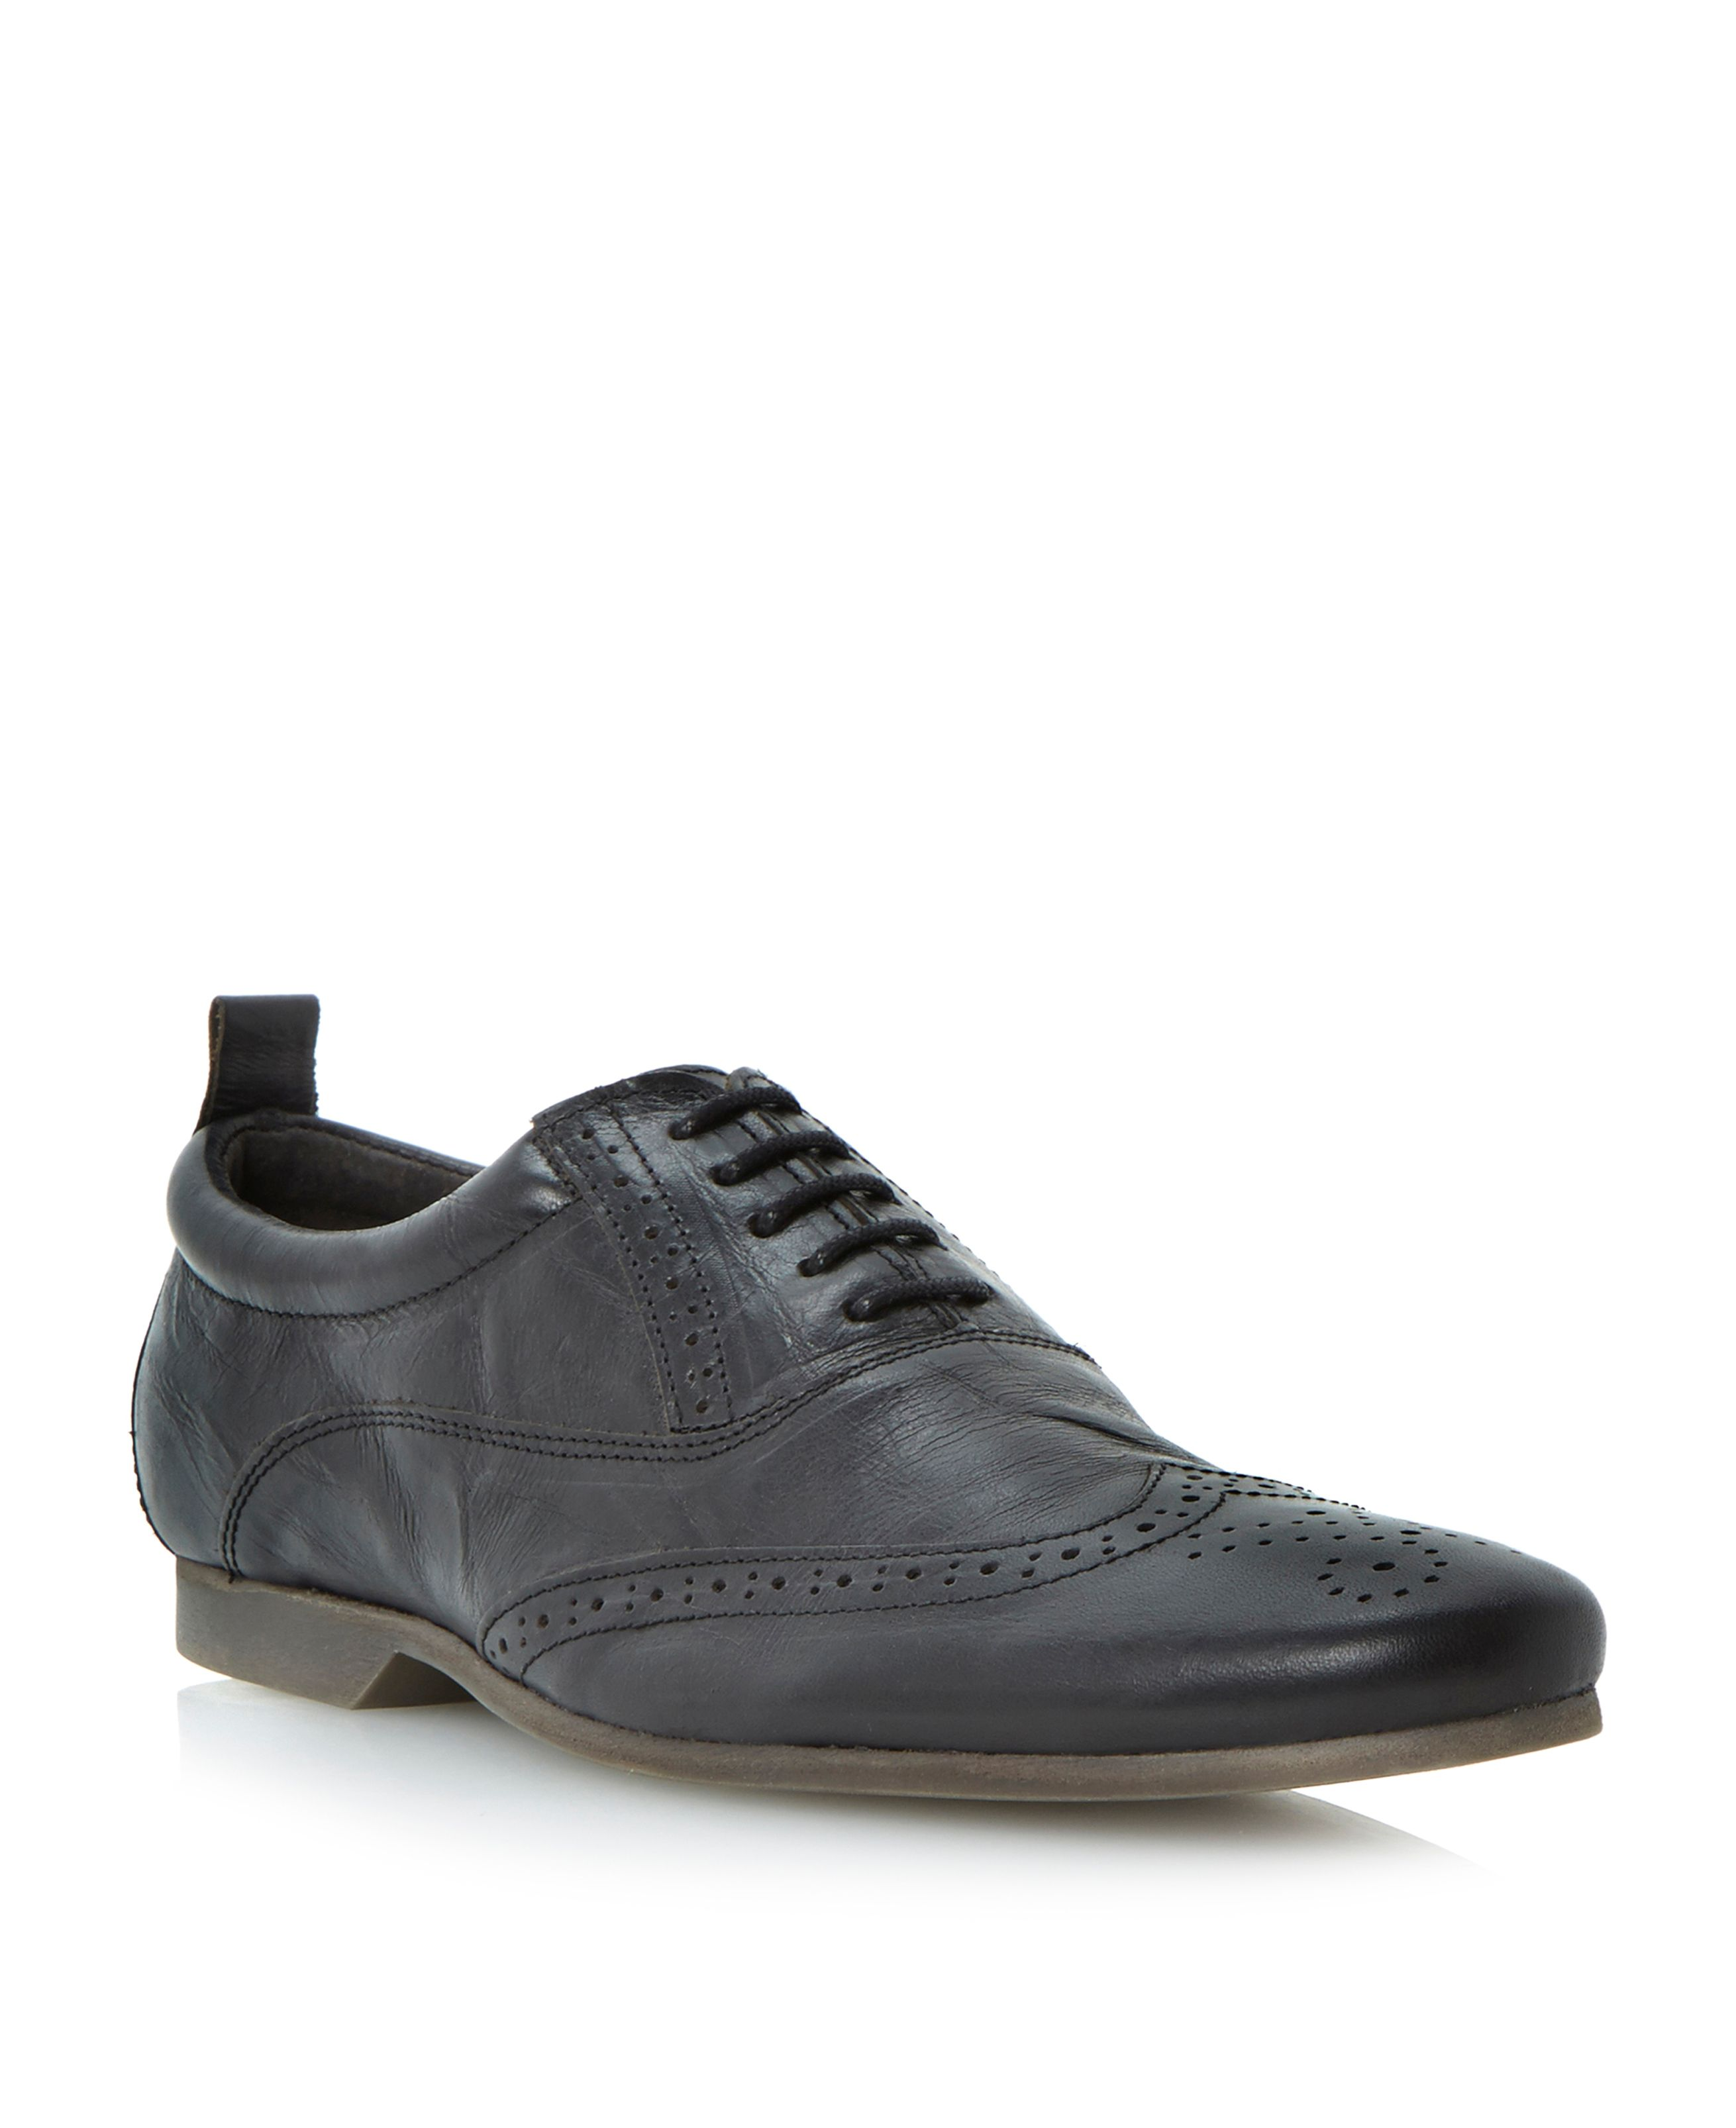 Robbie flexi sole wingtip oxford lace up shoes